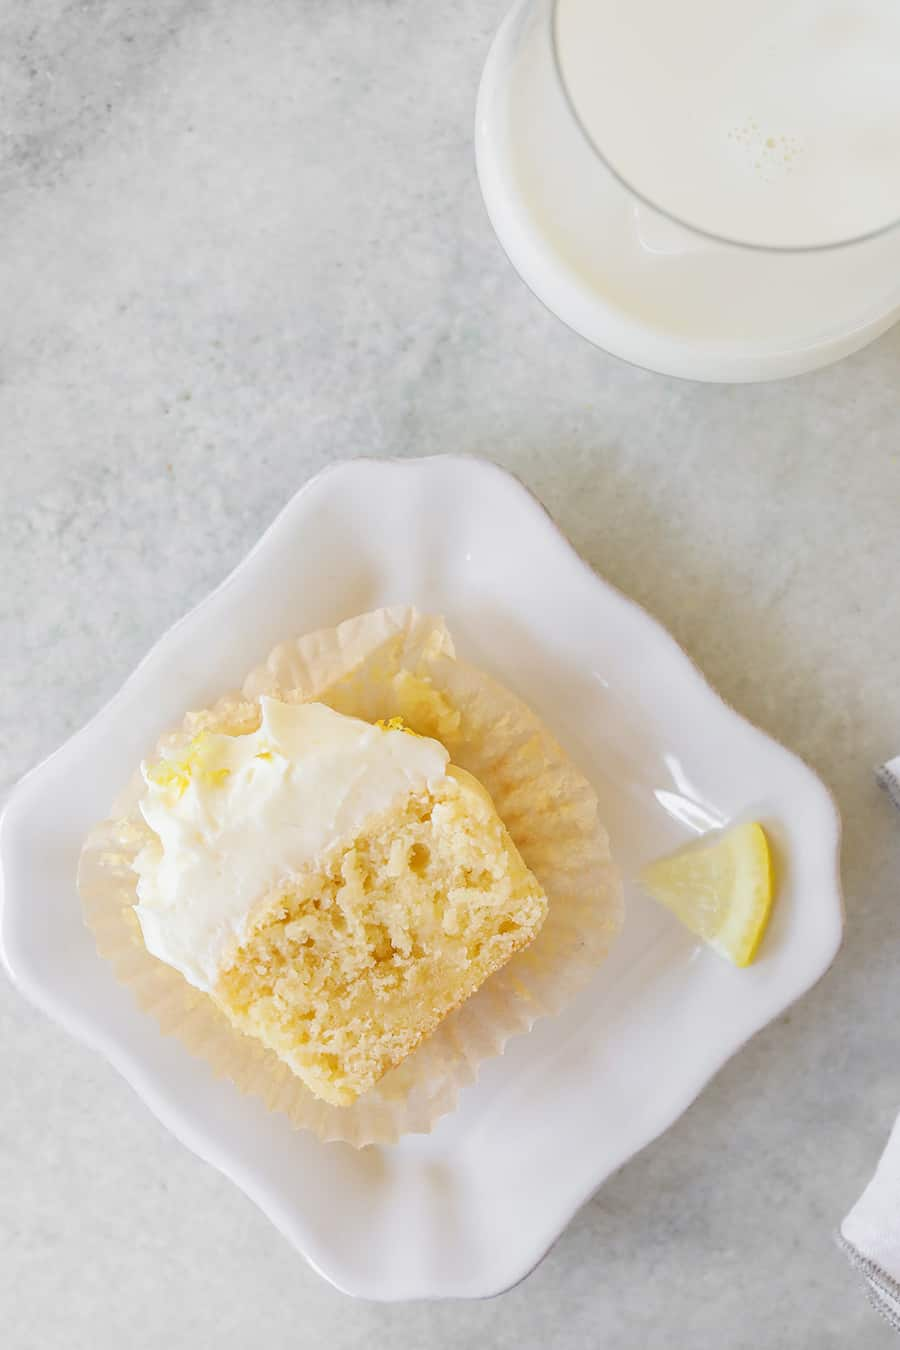 Slice of a lemon cupcake